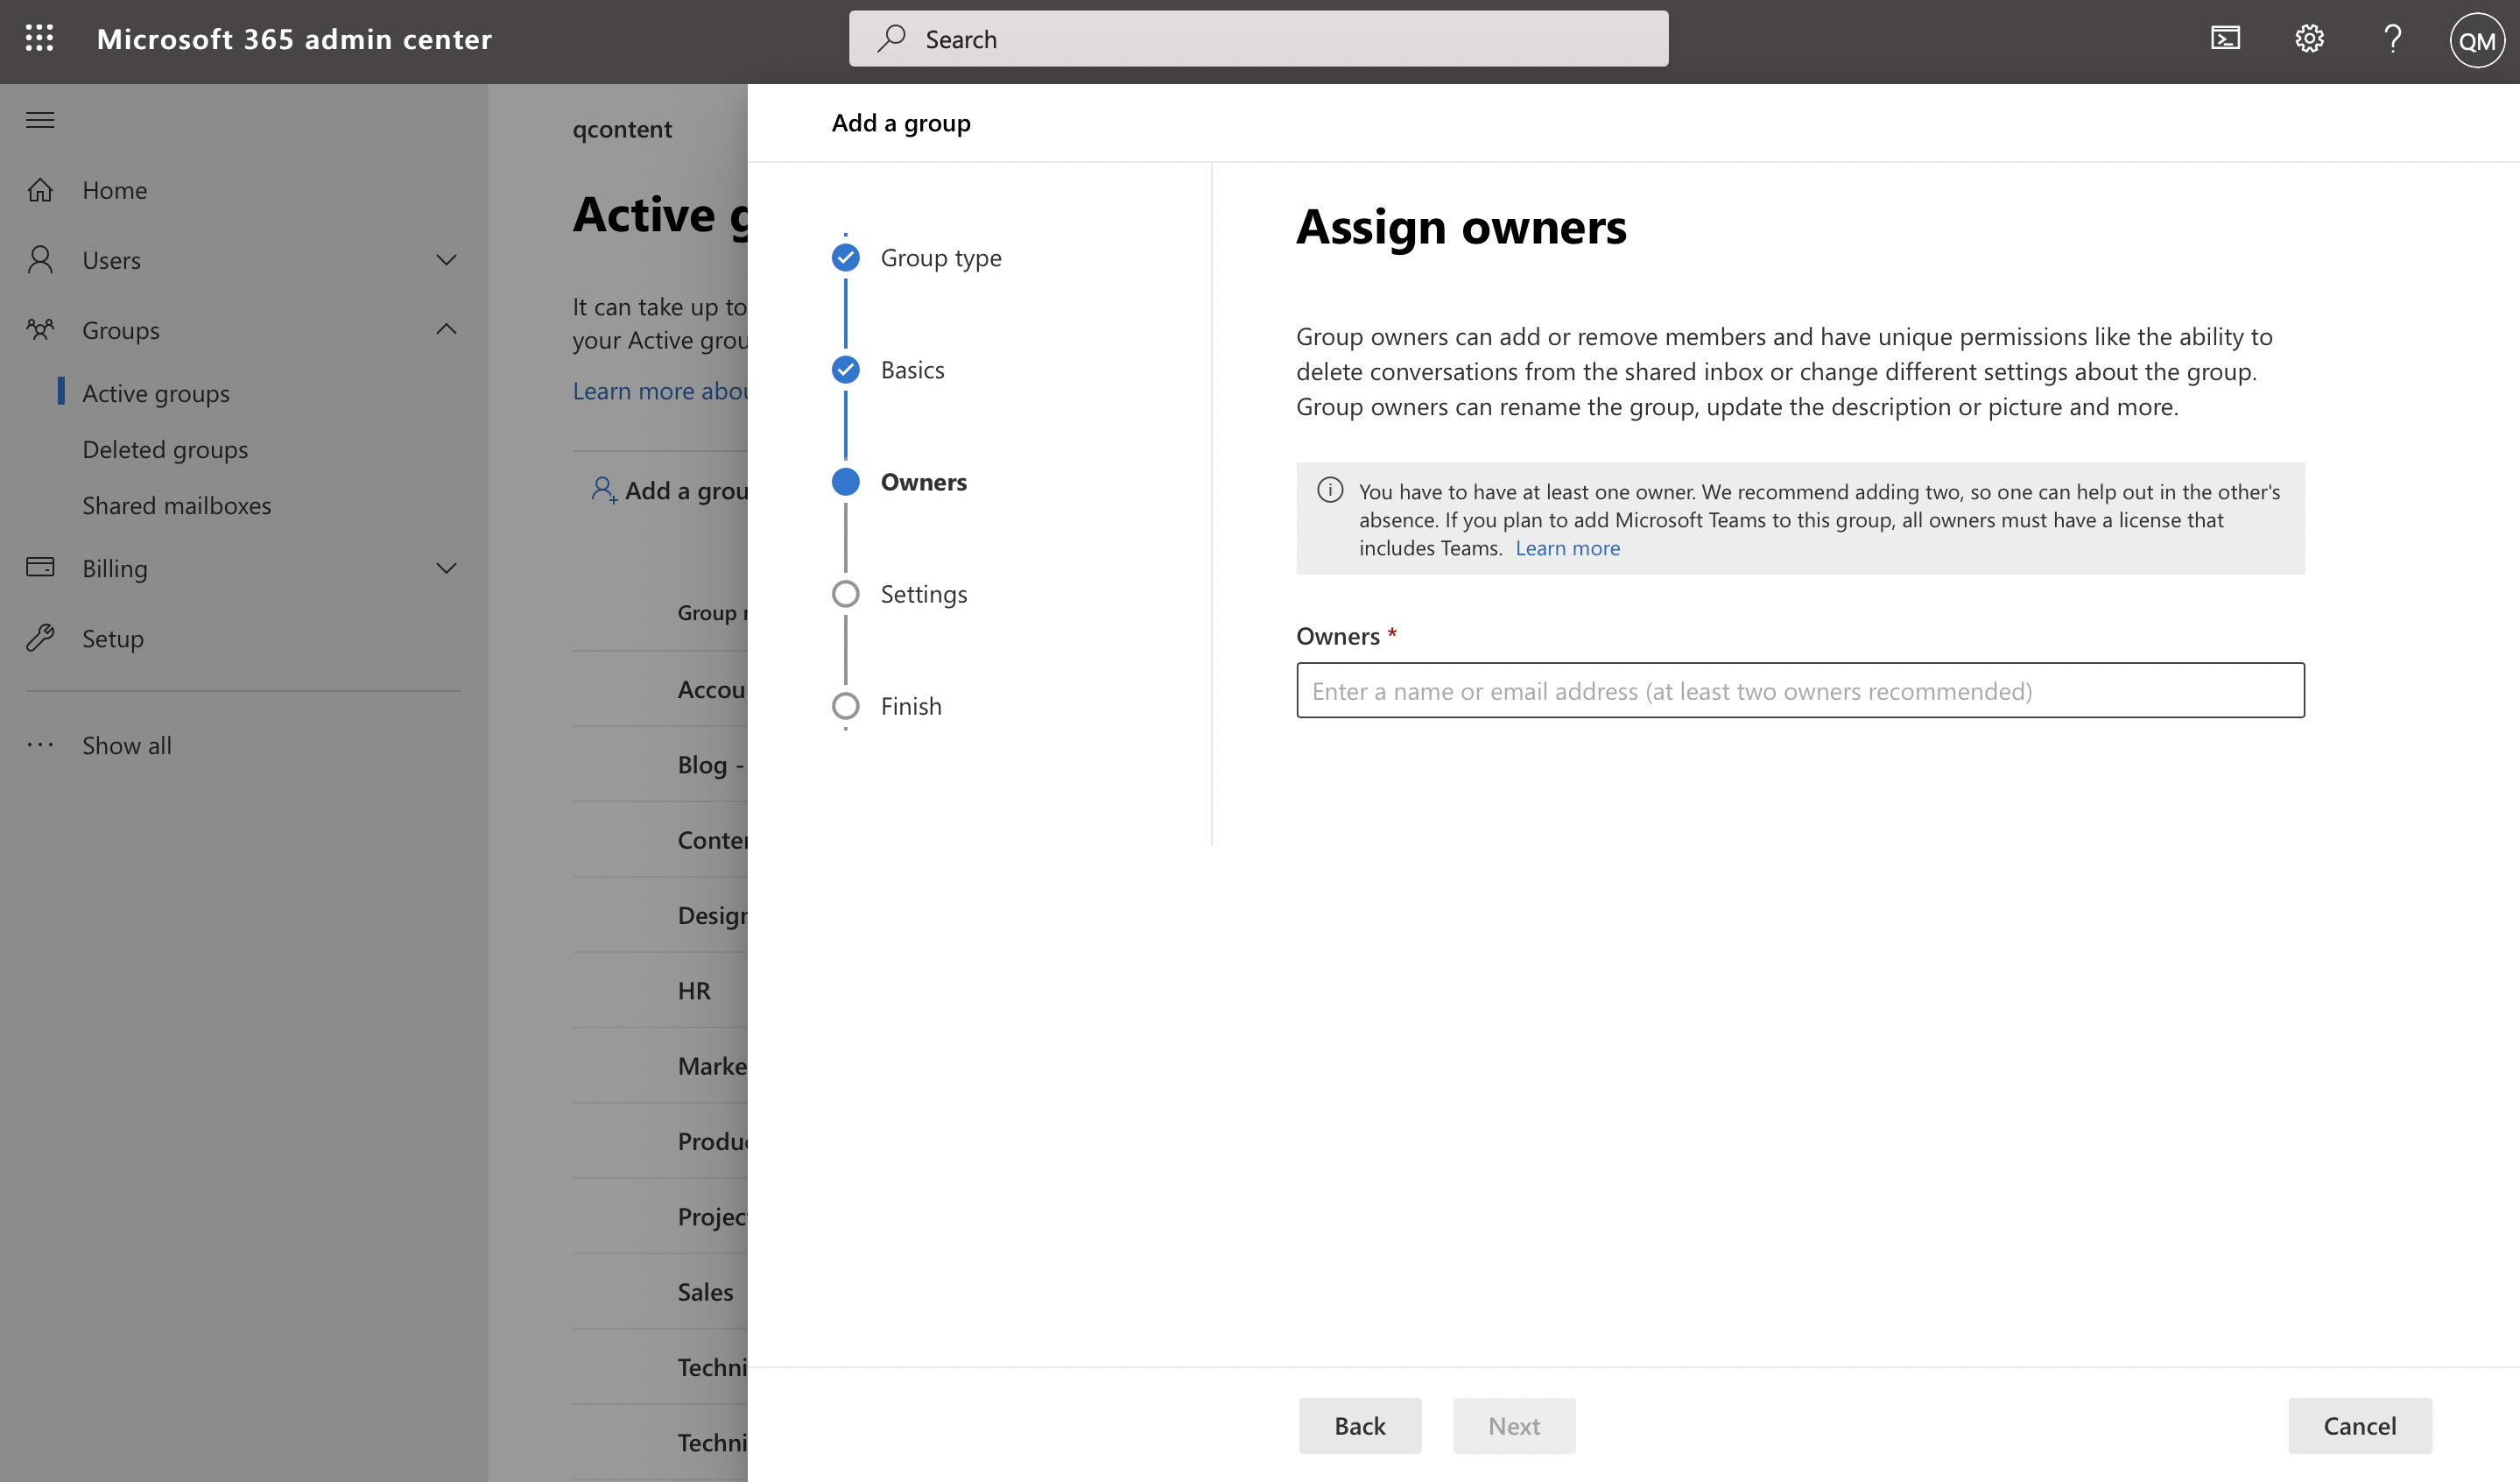 Screenshot of user assigning group owners in Microsoft admin center